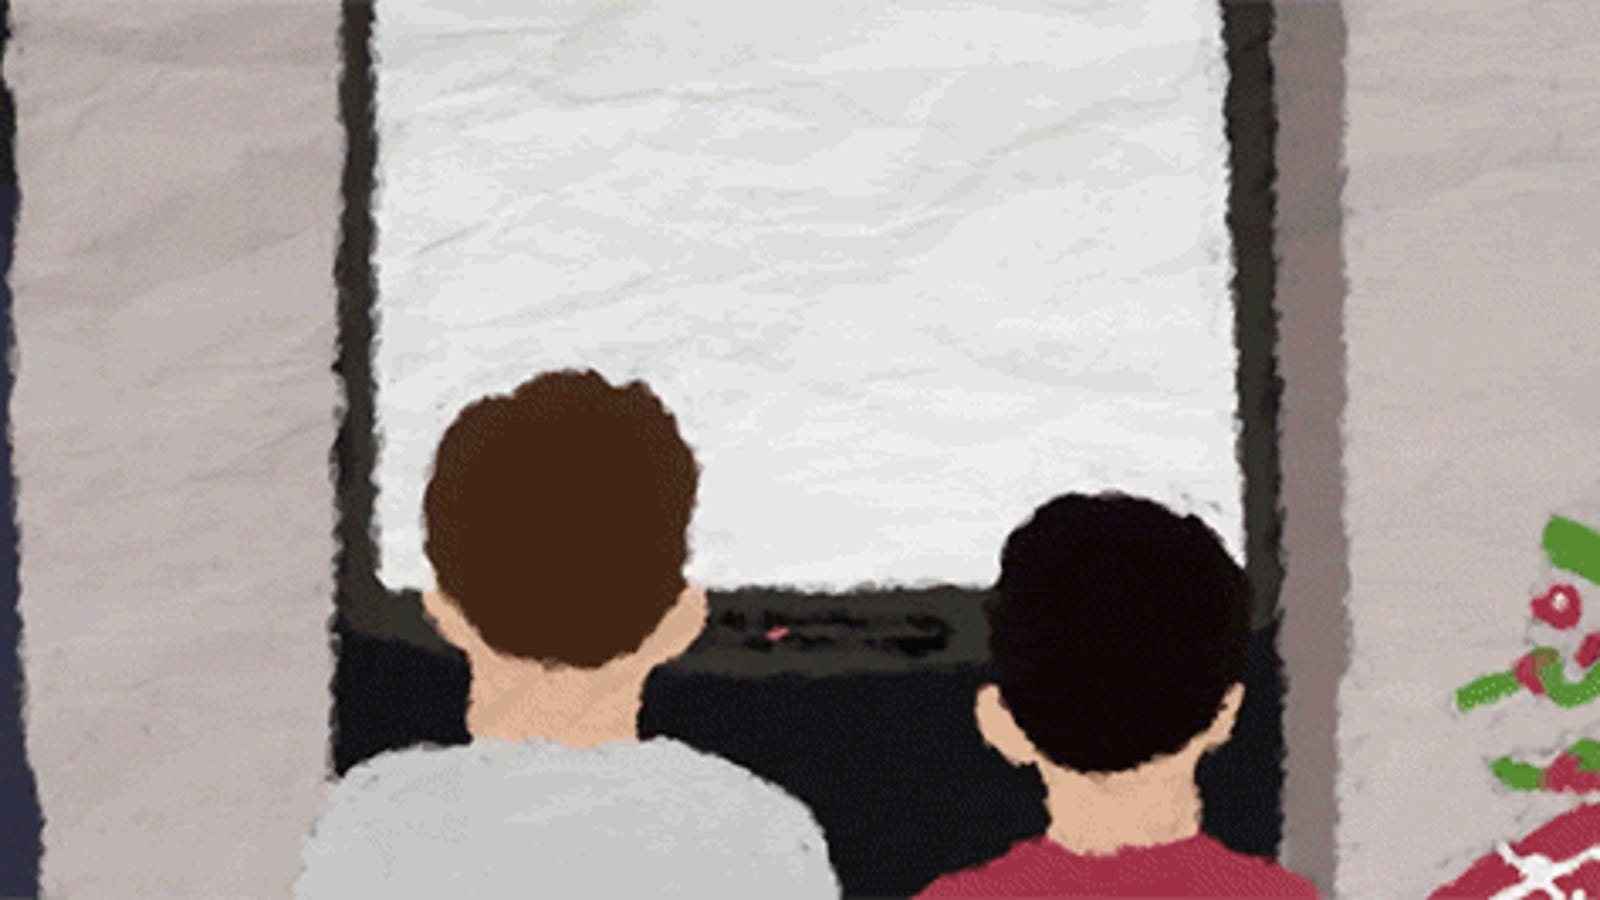 Short Film Shows What It's Like to Grow Up Being Player Two in Video Games